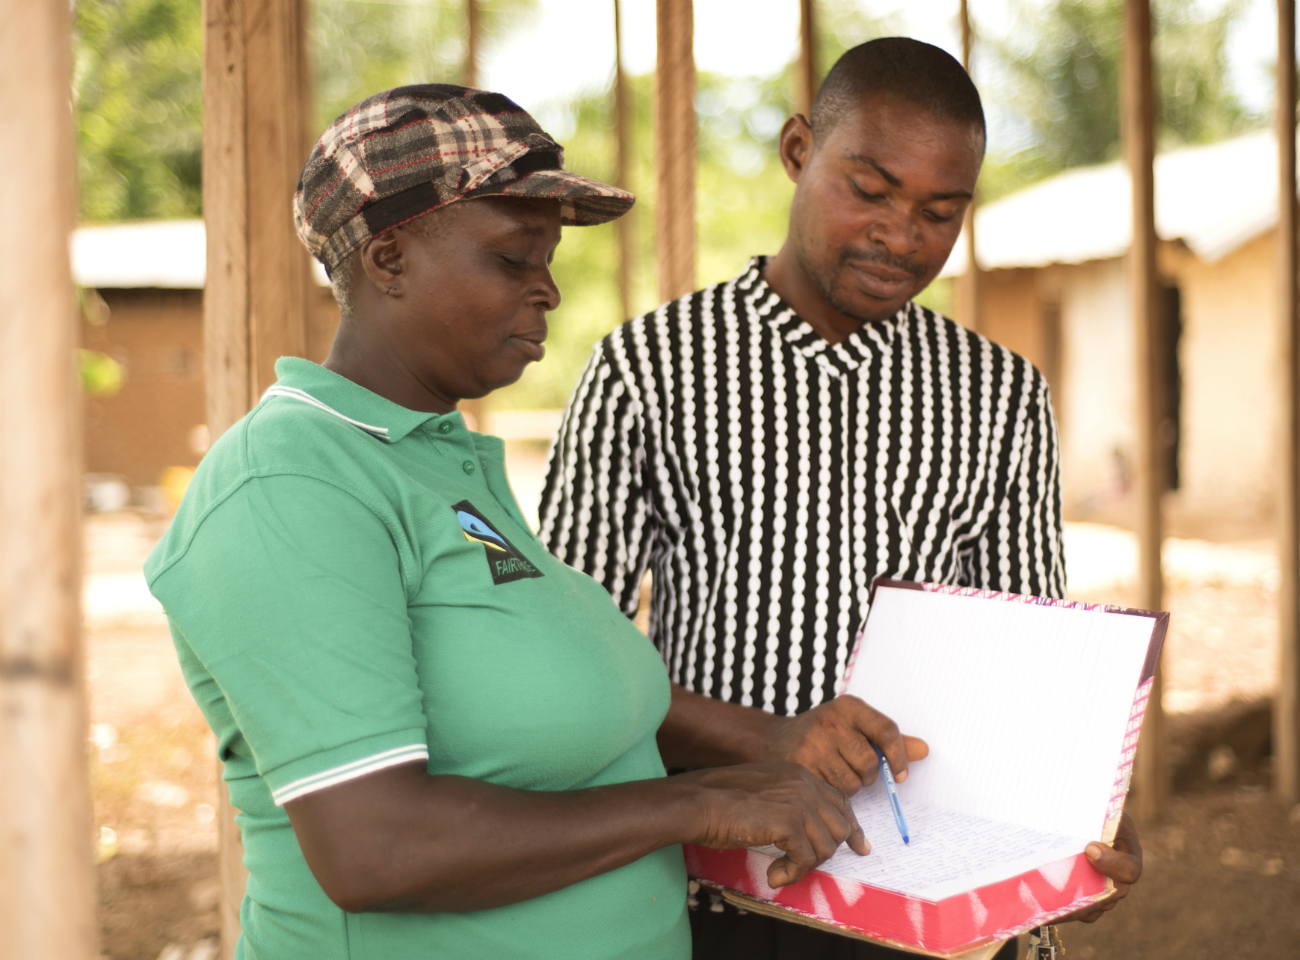 Two members of the Mfama cocoa co-operative in Ghana reading a document